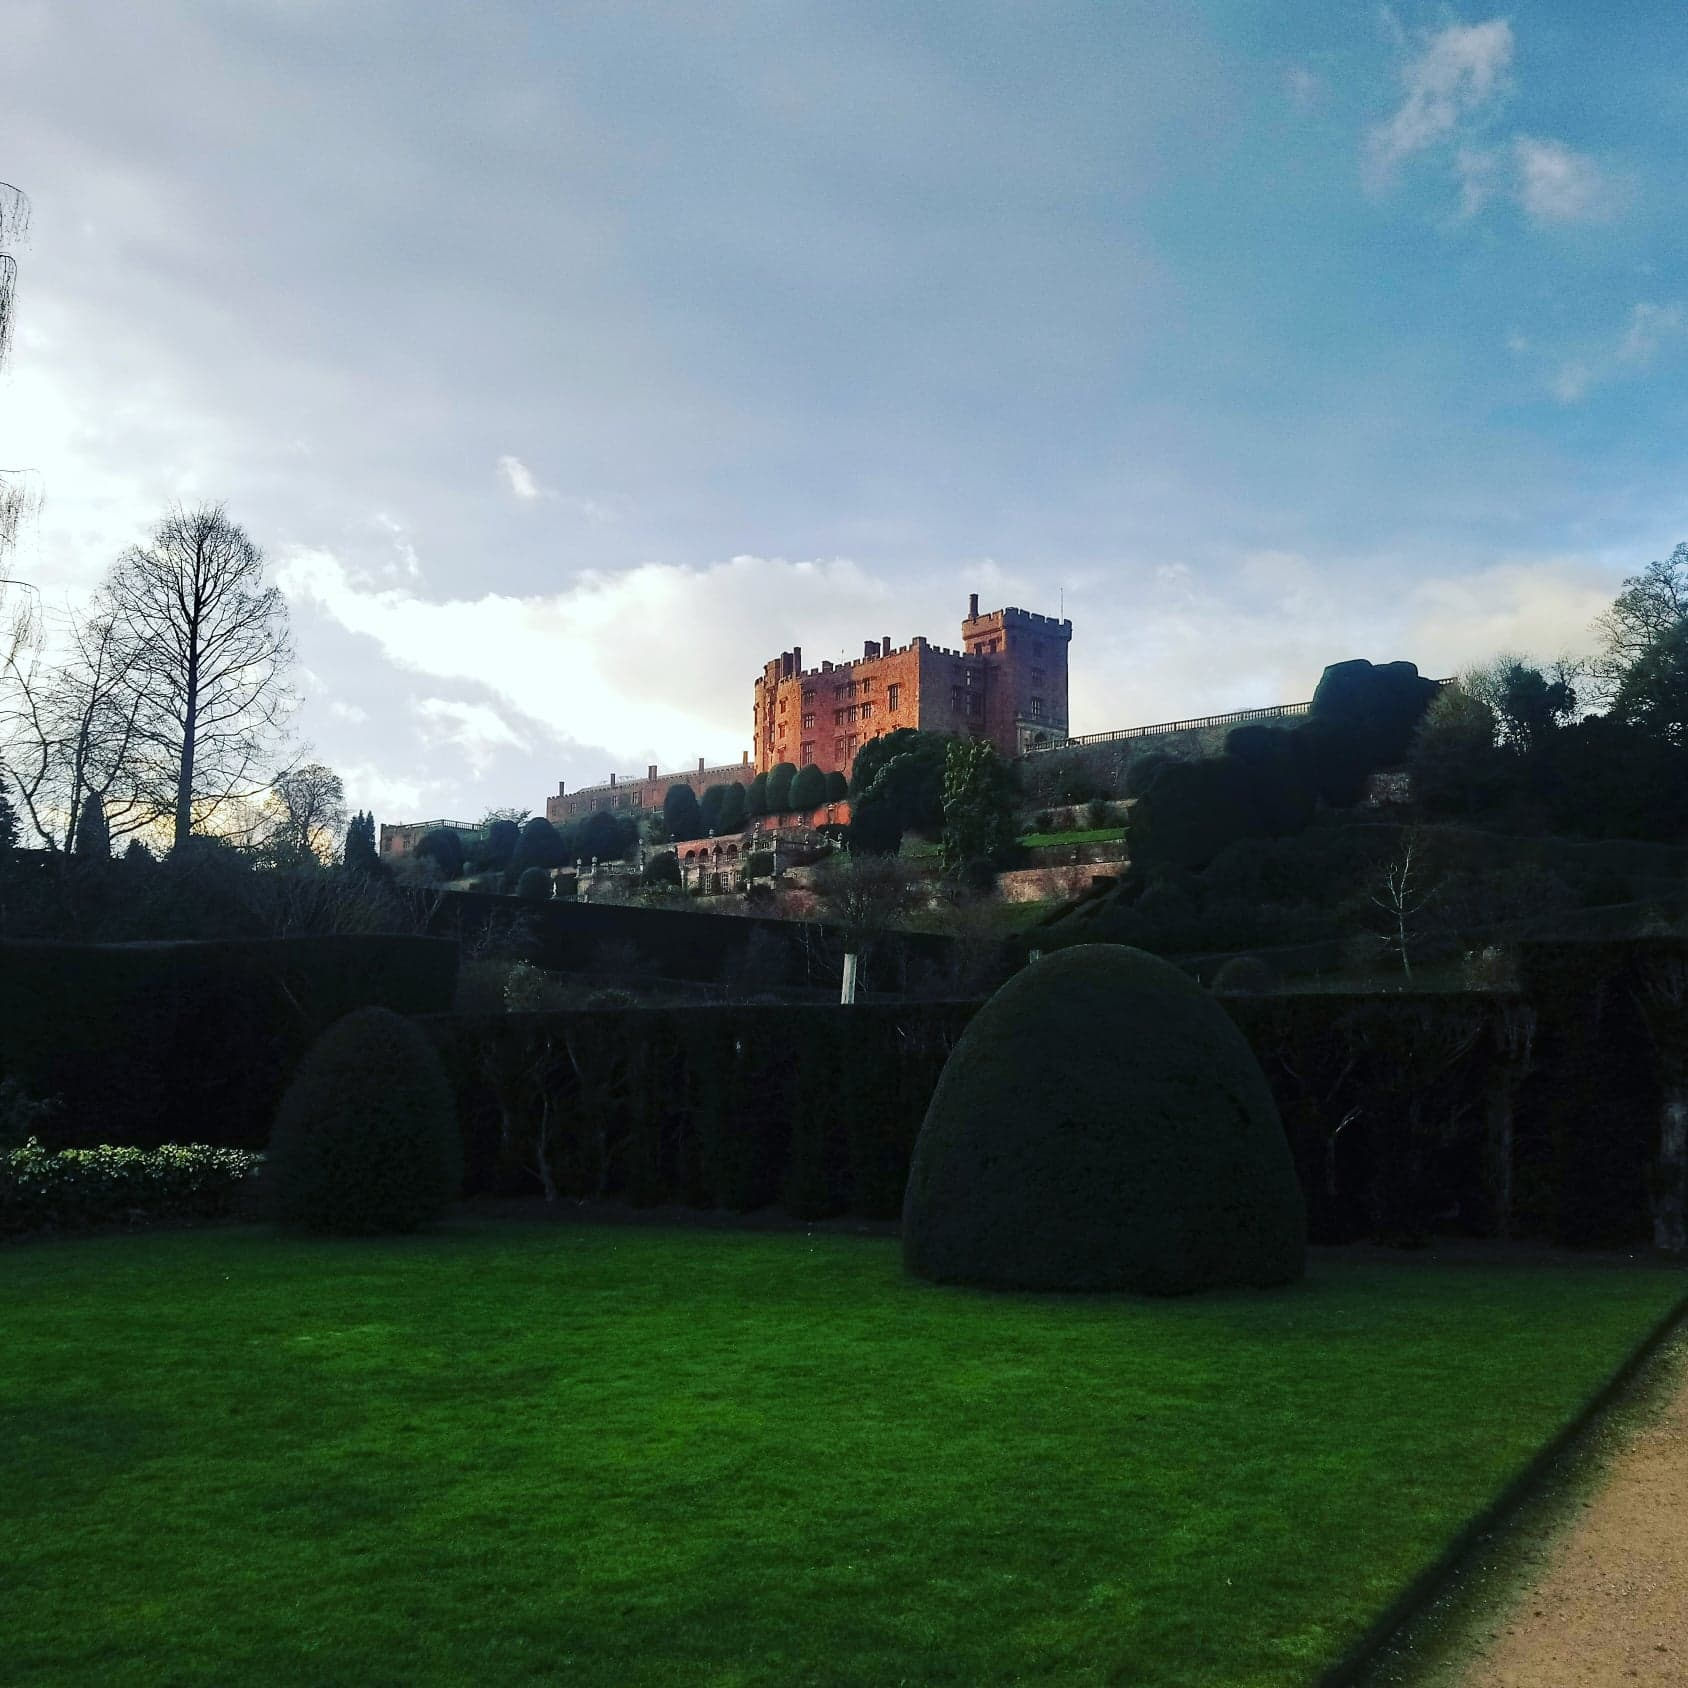 A view from the garden at Powis Castle | Study Work Travel Blog